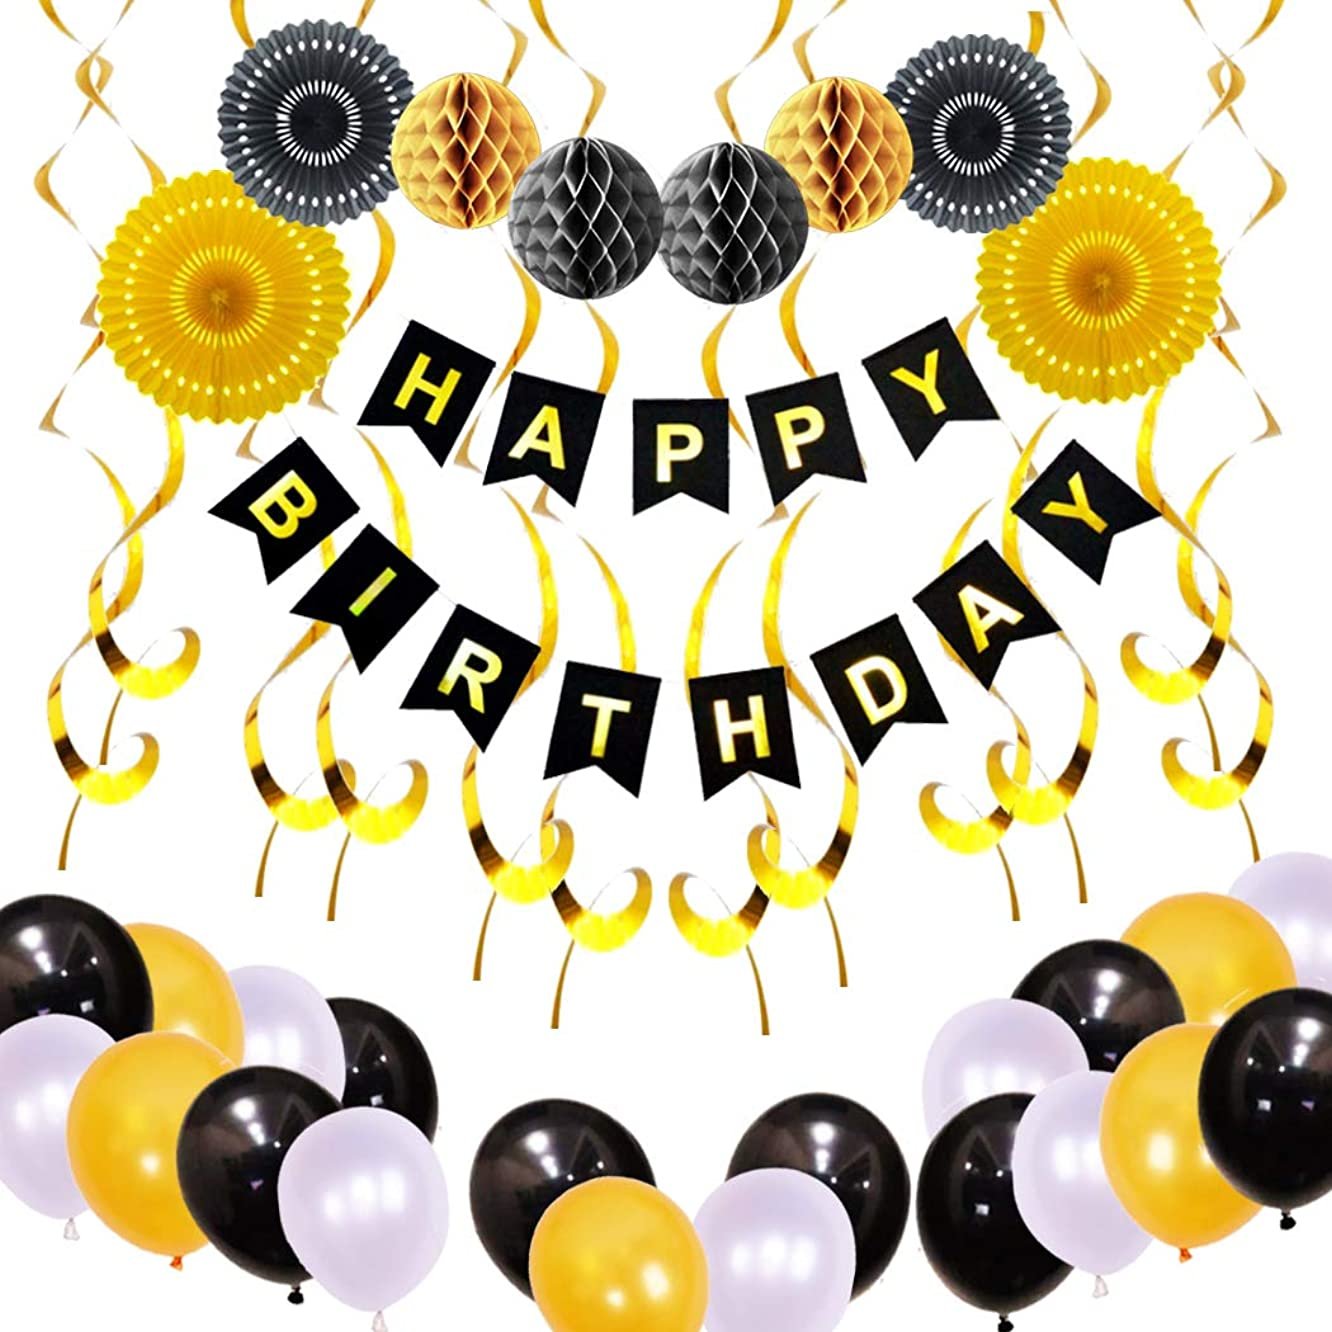 Finypa Birthday Party Decoration, Happy Birthday Banner with Paper Fans, Honeycomb Balls, Hanging Swirls and Balloons (Gold)